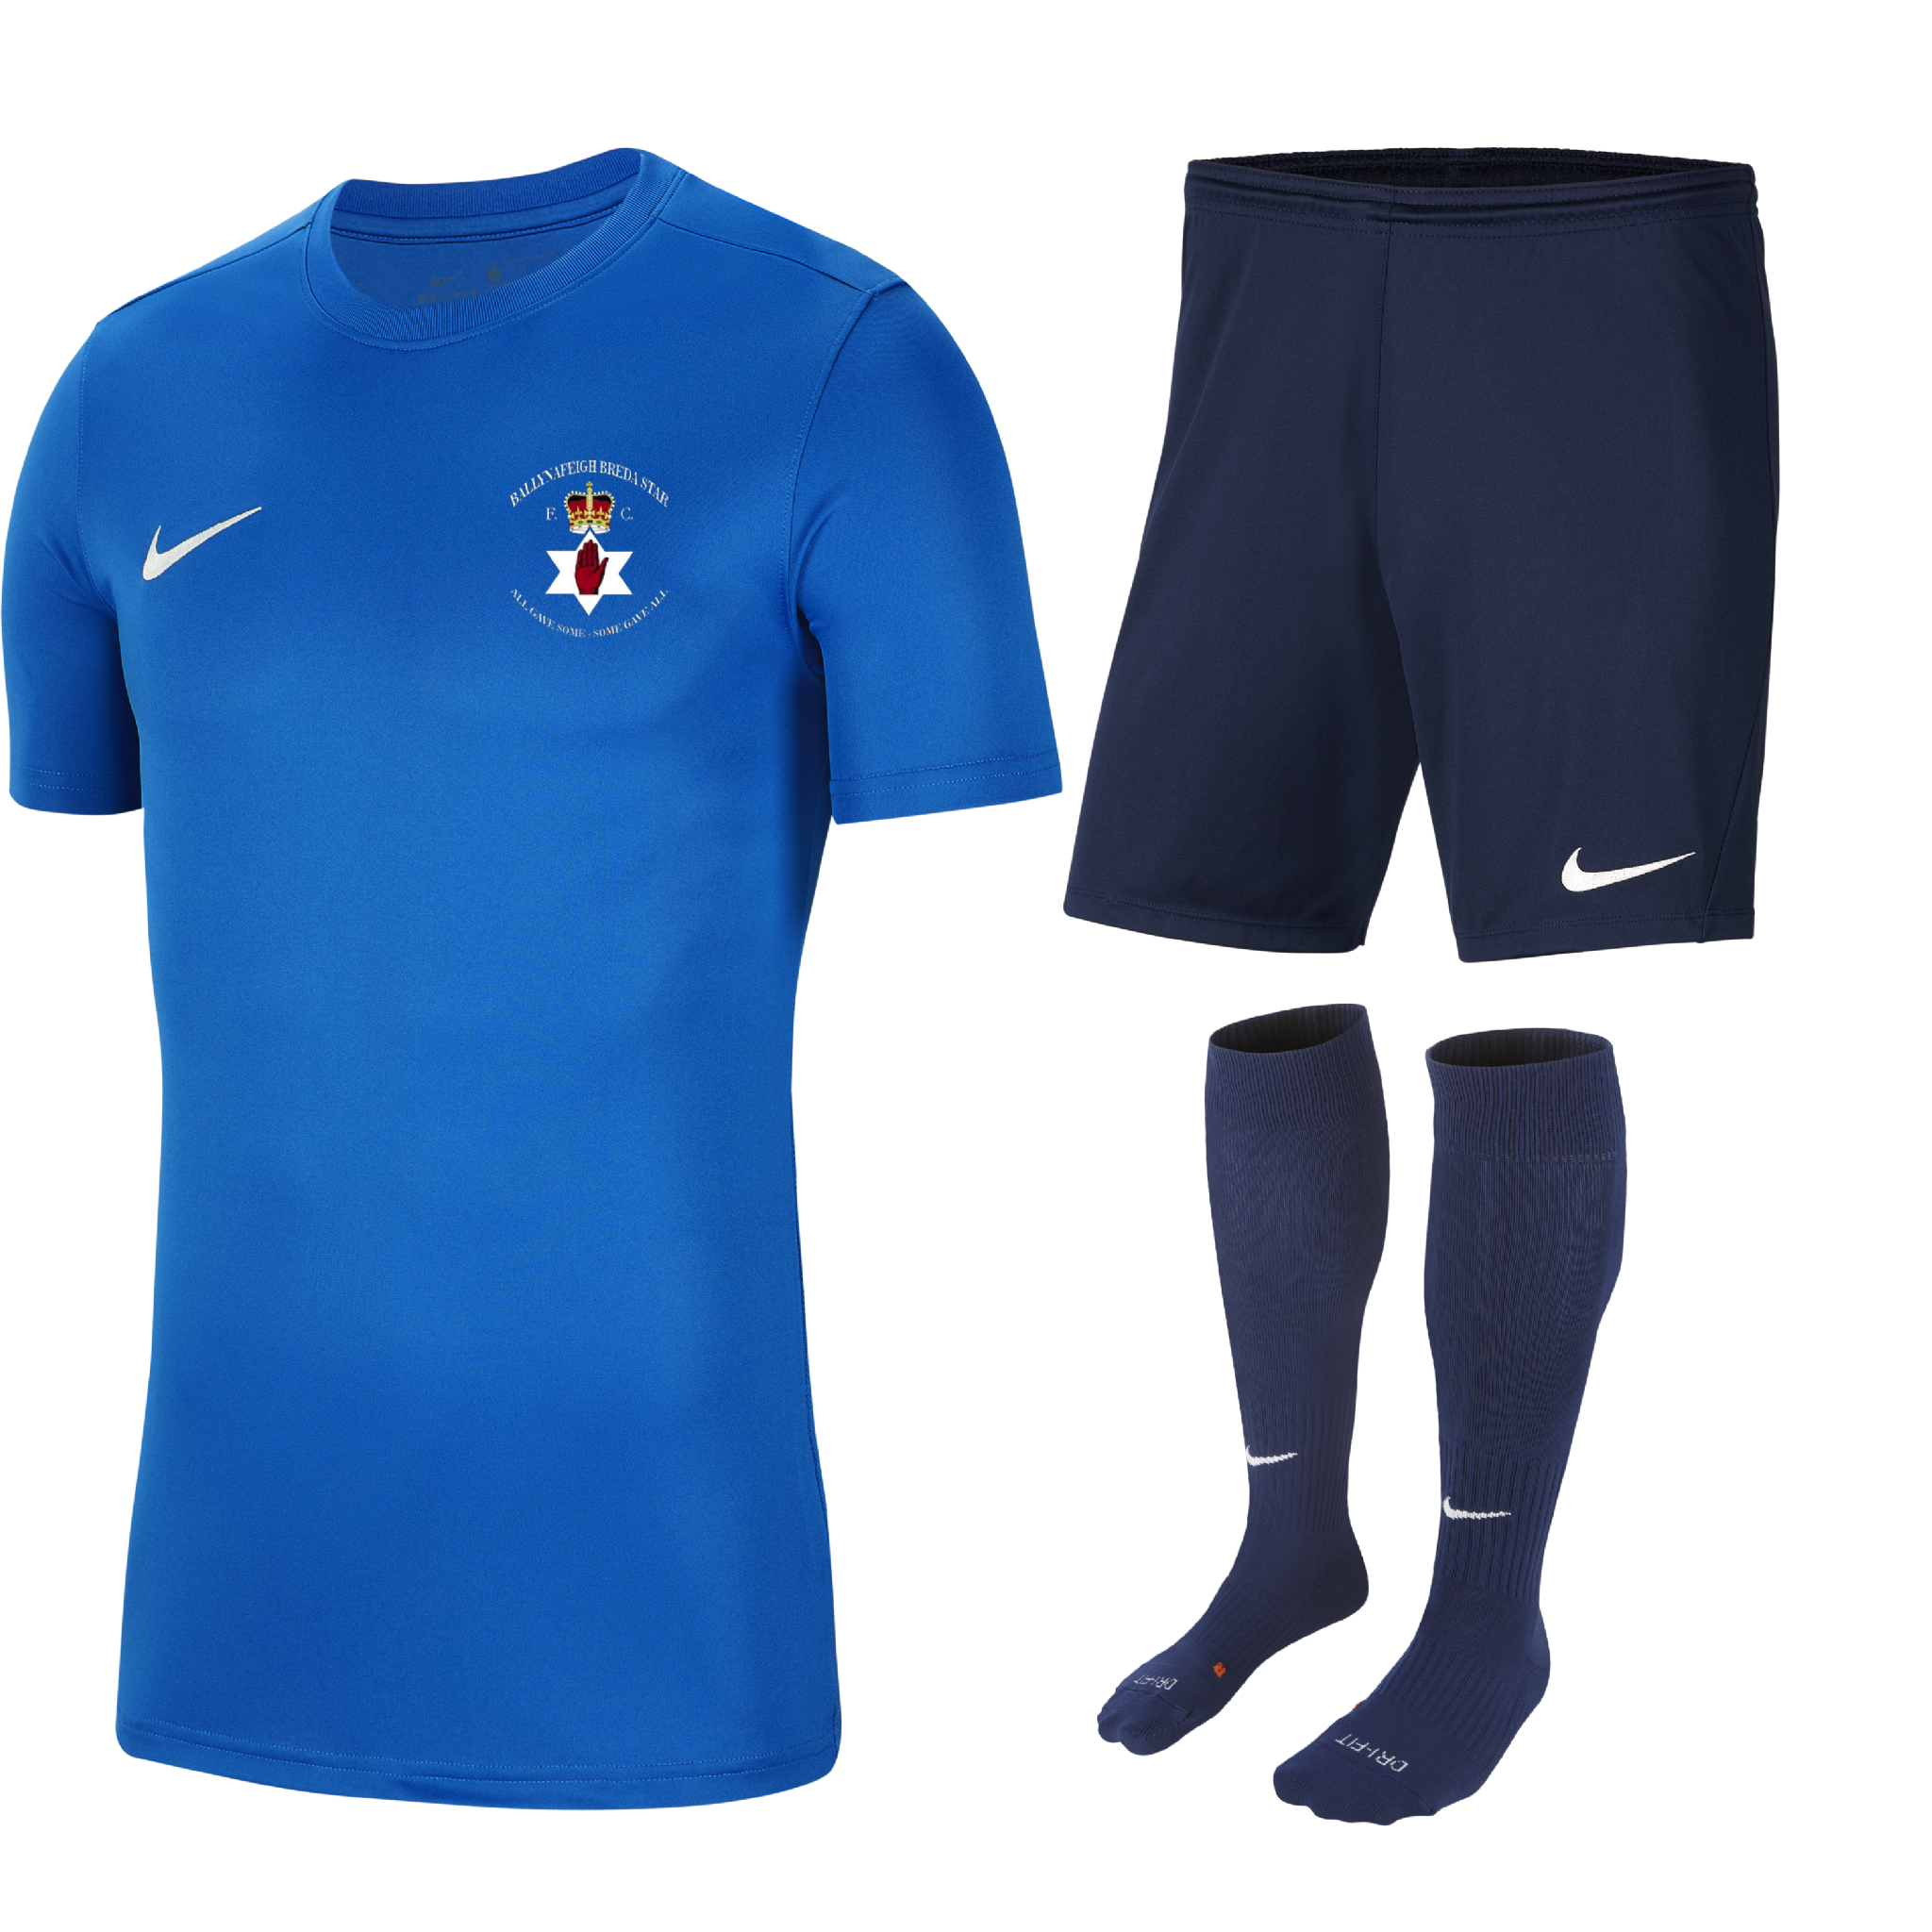 ballynafeigh breda star training kit 37987 1 p